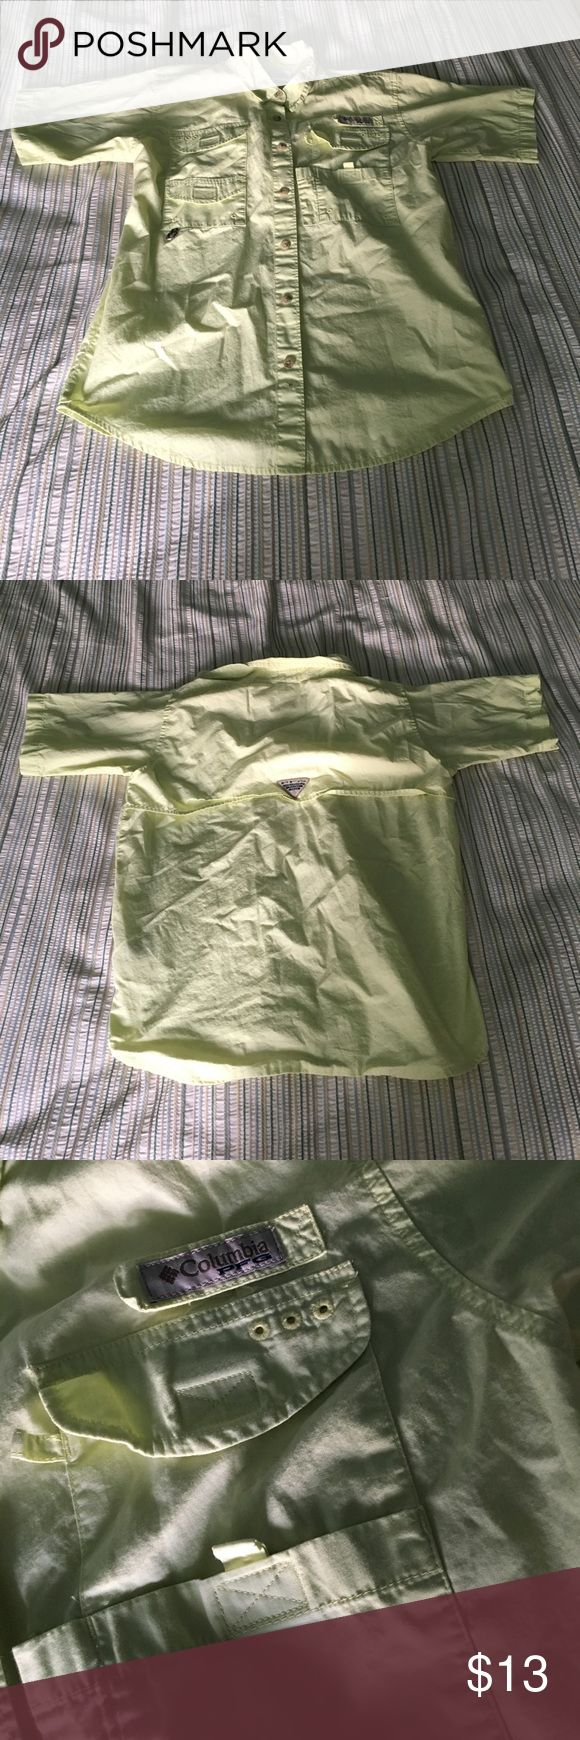 COLUMBIA PFG SHIRT COLUMBIA PFG KIDS FISHING SHIRT. SIZE YOUTH LARGE. DARK YELLOW COLOR. LIKE NEW. HAS 4 MINI POCKETS AND BREATHING MESH ON BACK. COMMENT FOR QUESTIONS. Columbia Shirts Casual Button Down Shirts